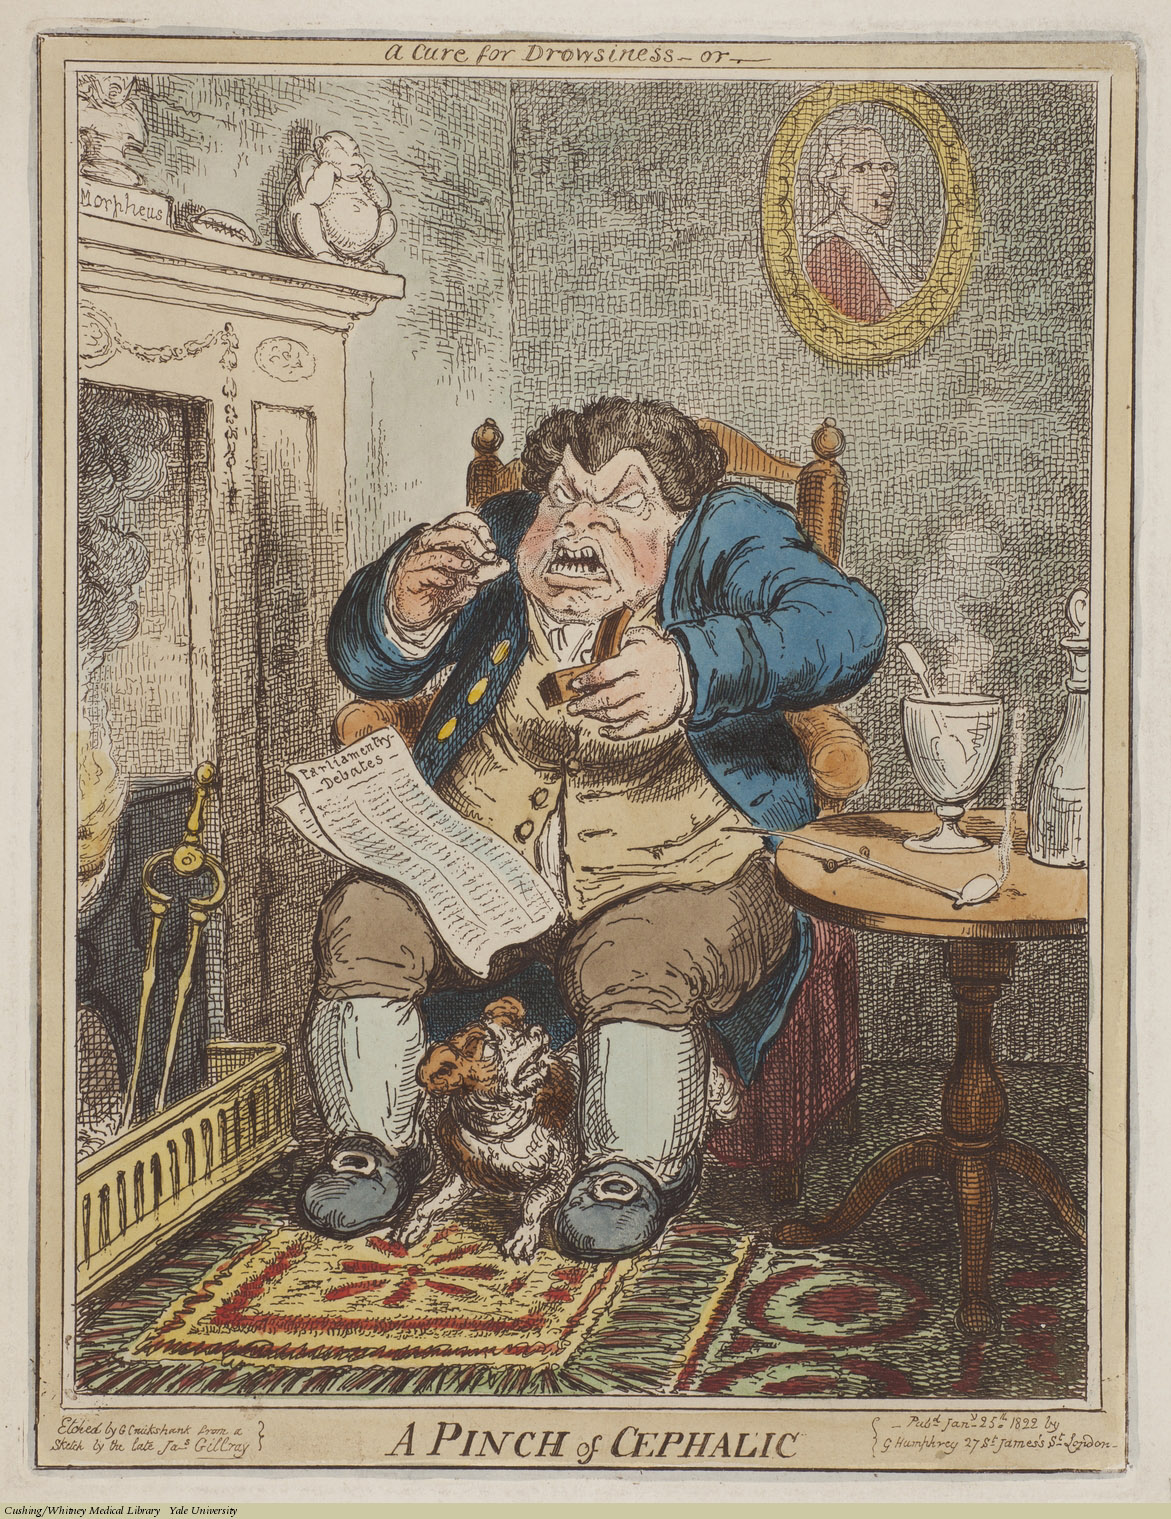 A Cure for Drowsiness--or--A Pinch of Cephalic. George Cruikshank, Etching coloured,Jan. 25th 1822. Subject: Tobacco, Snuff, Smoking.